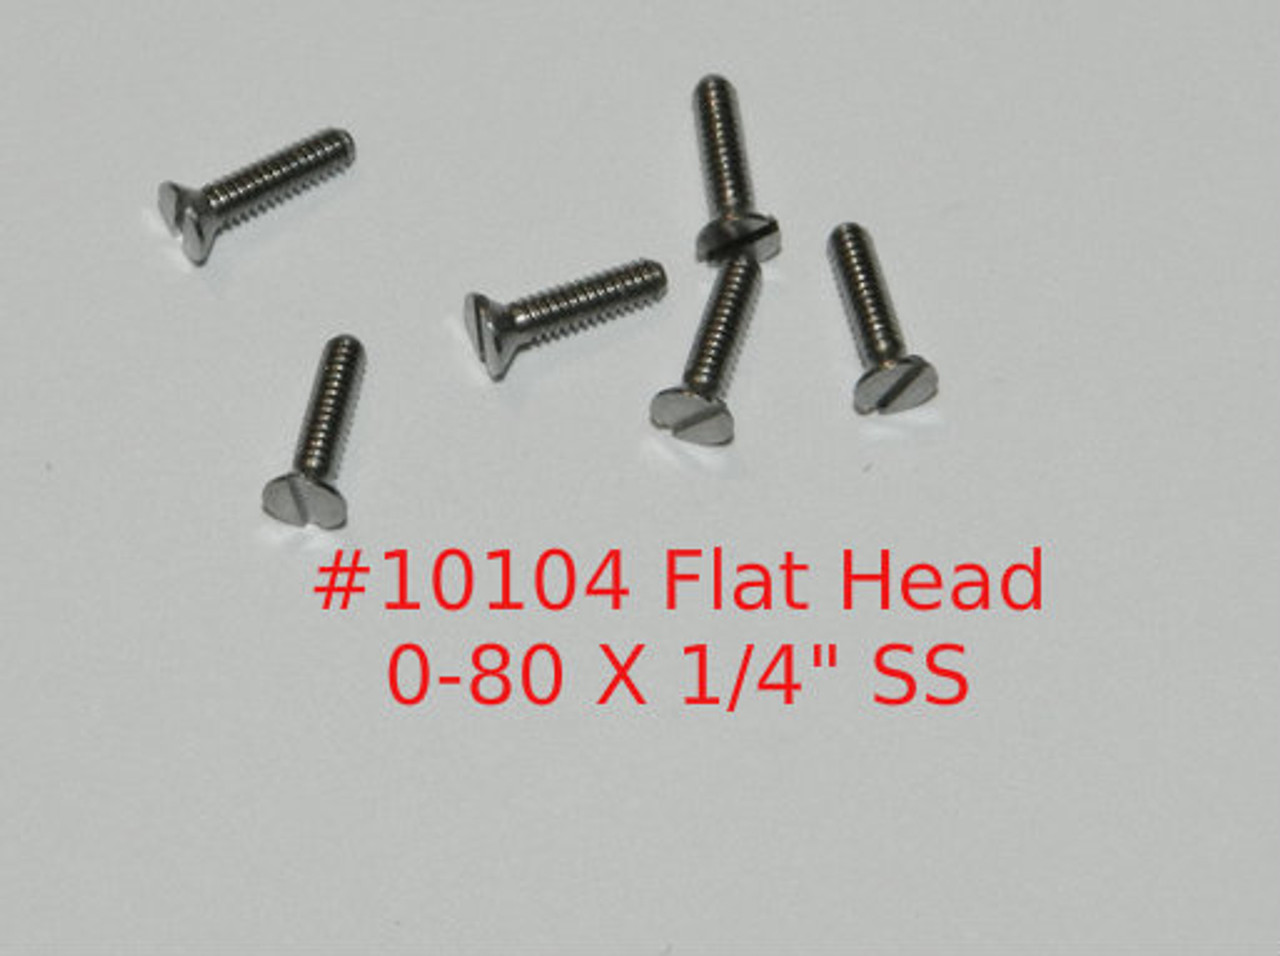 """0-80 2A Thread Flat Head, 82 Degree,  Precision Slotted Machine Screw, Length 1/4"""" Full Thread, Stainless Steel #303, Price is for 100 Pieces. Polished Instrument Grade."""